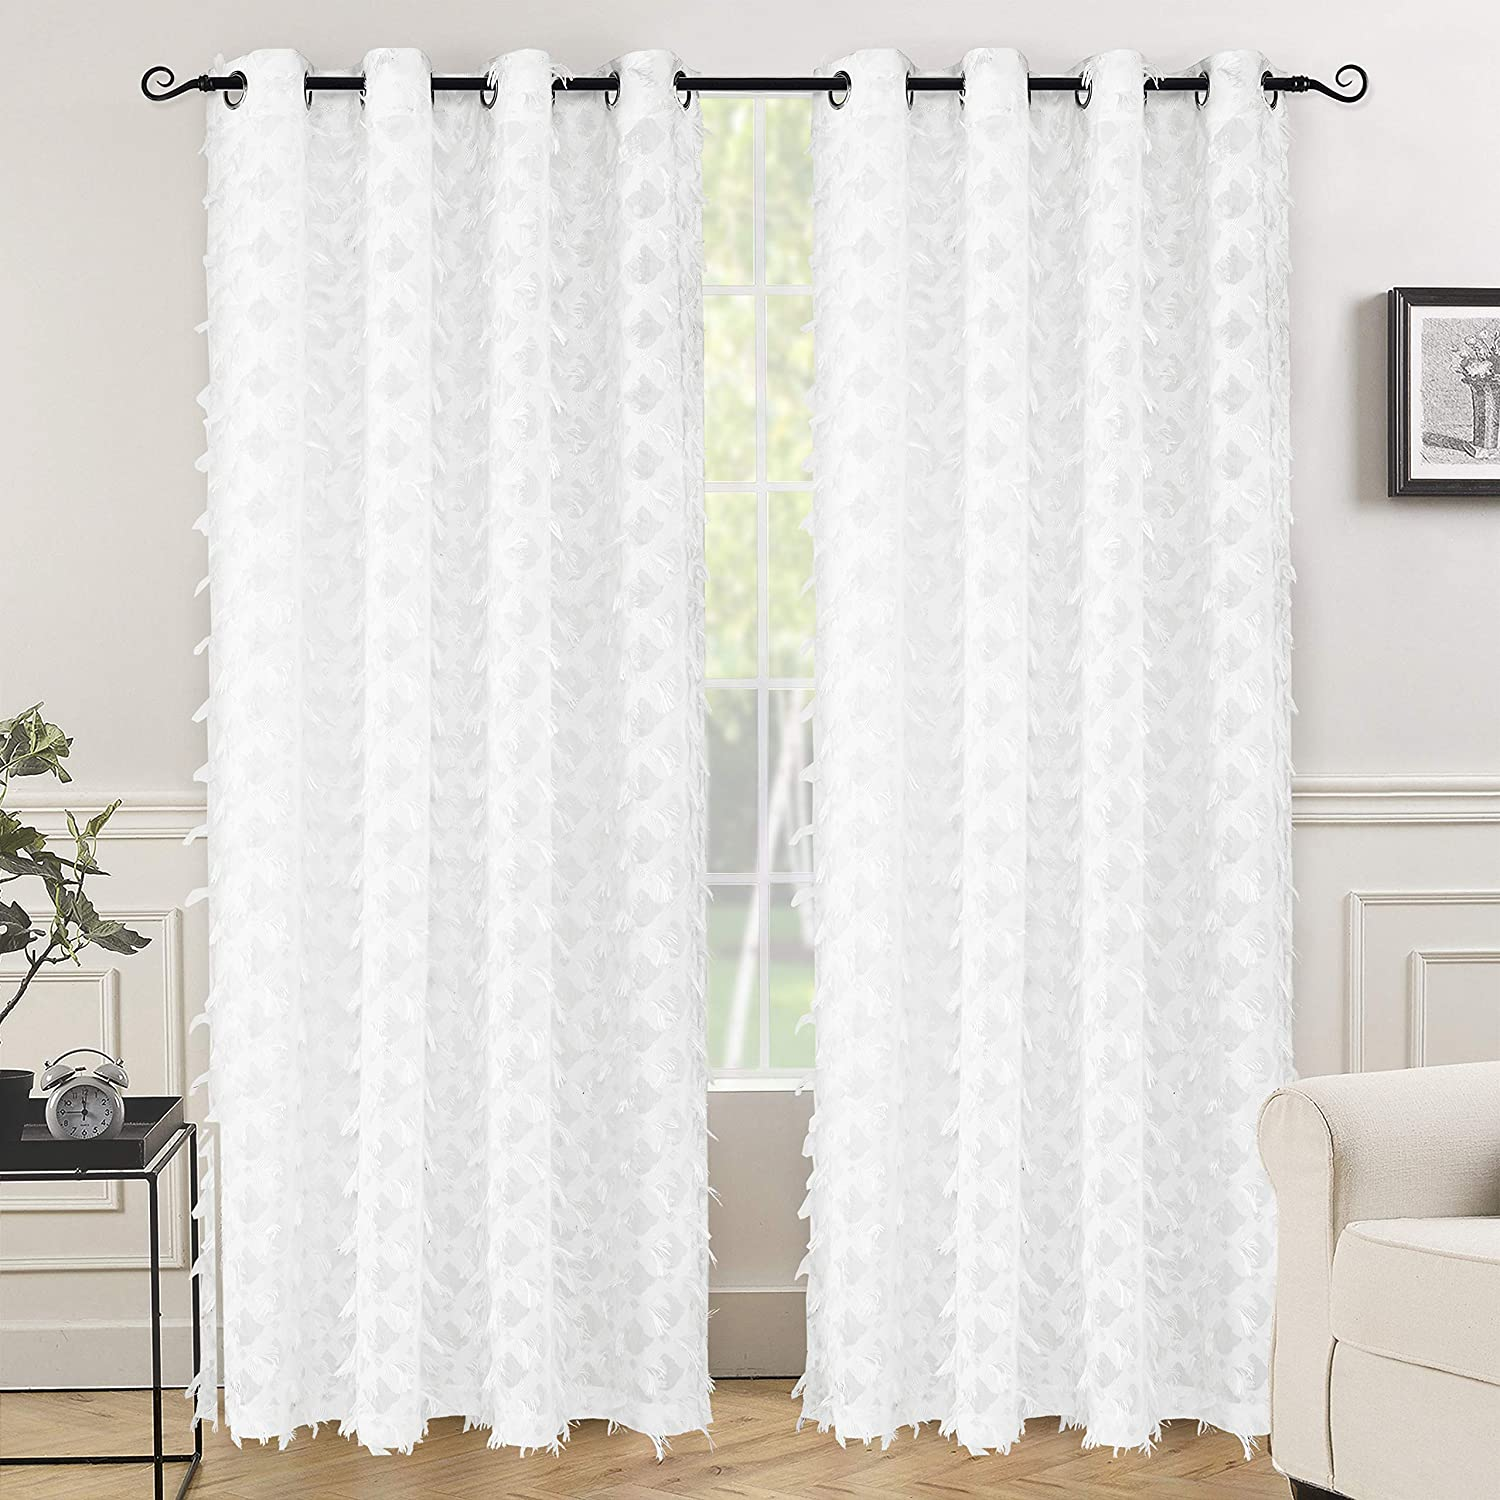 """DriftAway White Voile Grommet Semi Sheer Curtains, Woven Water Drop Geometric Pattern, Embroidered silver thread with Featherlike Soft Pom Pom Tassel, Faux Linen Texture, Set of 2, 52""""X84"""" (Off White)"""